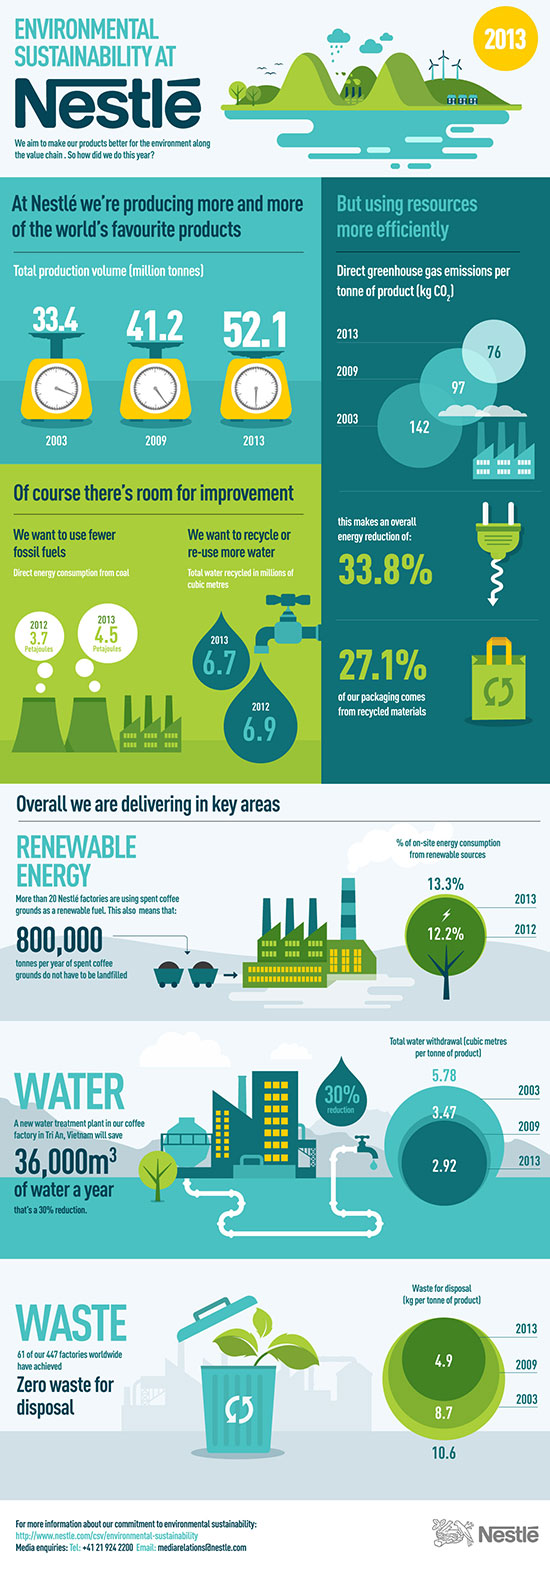 environmental-sustainability-infographic-page